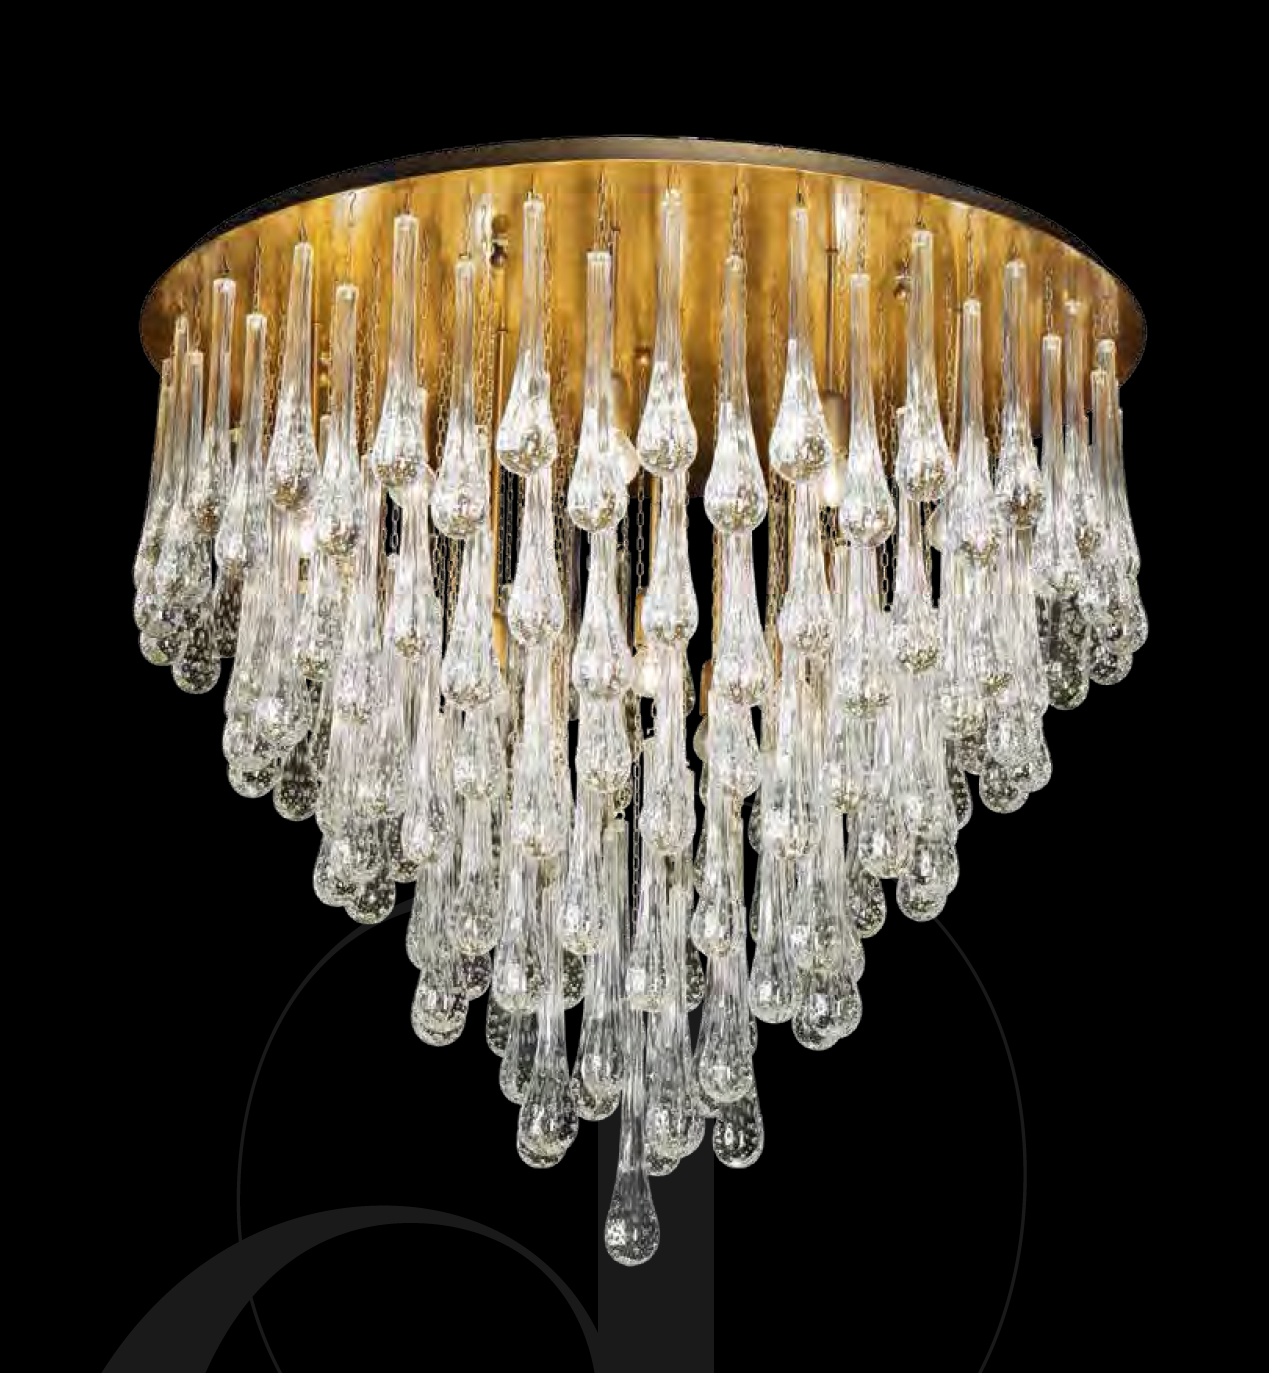 Chandeliers drops crystal chandelier dropsg mozeypictures Image collections